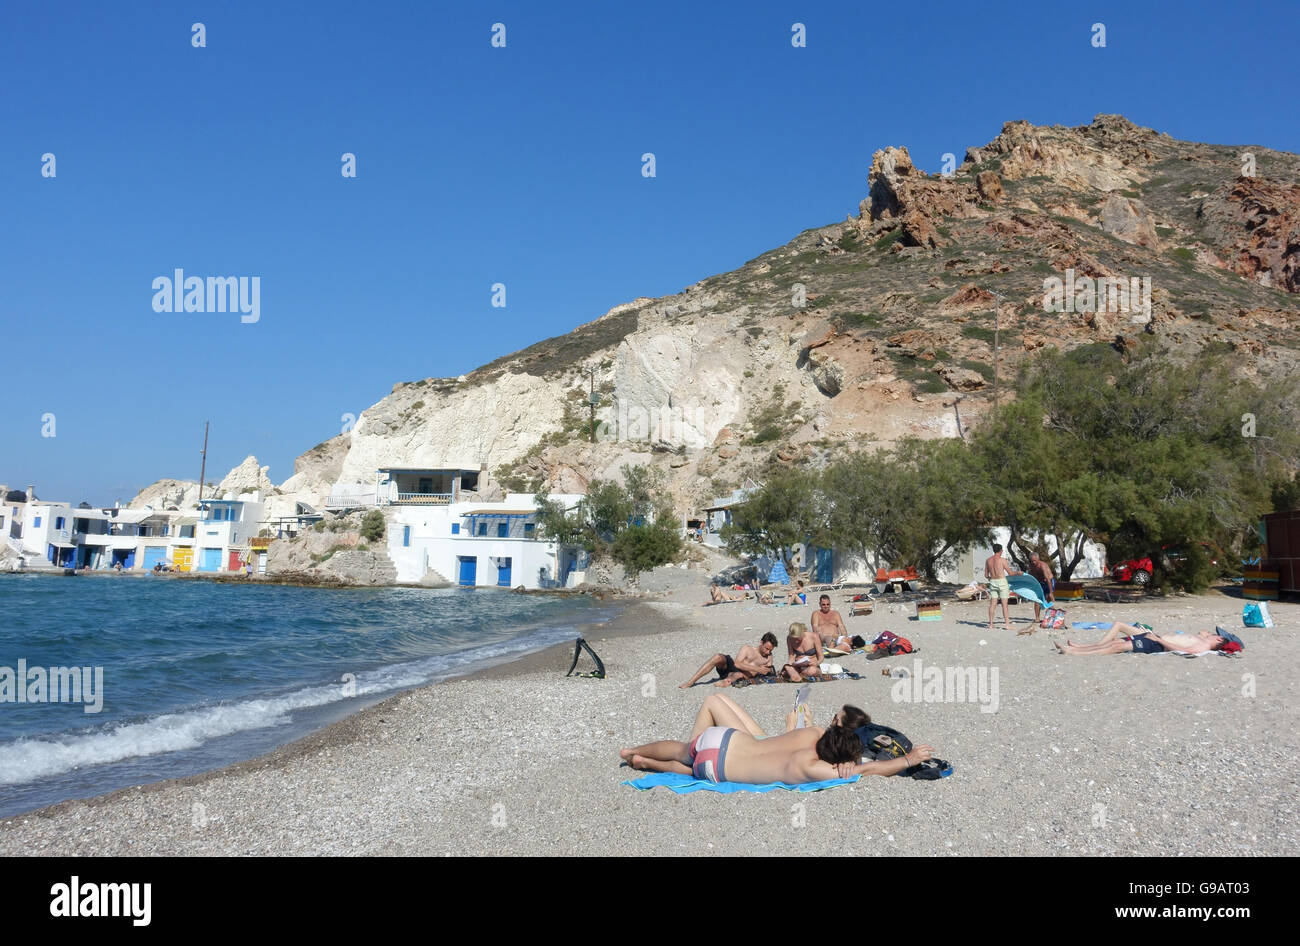 holidaymakers sunbathing on a beach in the Greek island of Milos - Stock Image